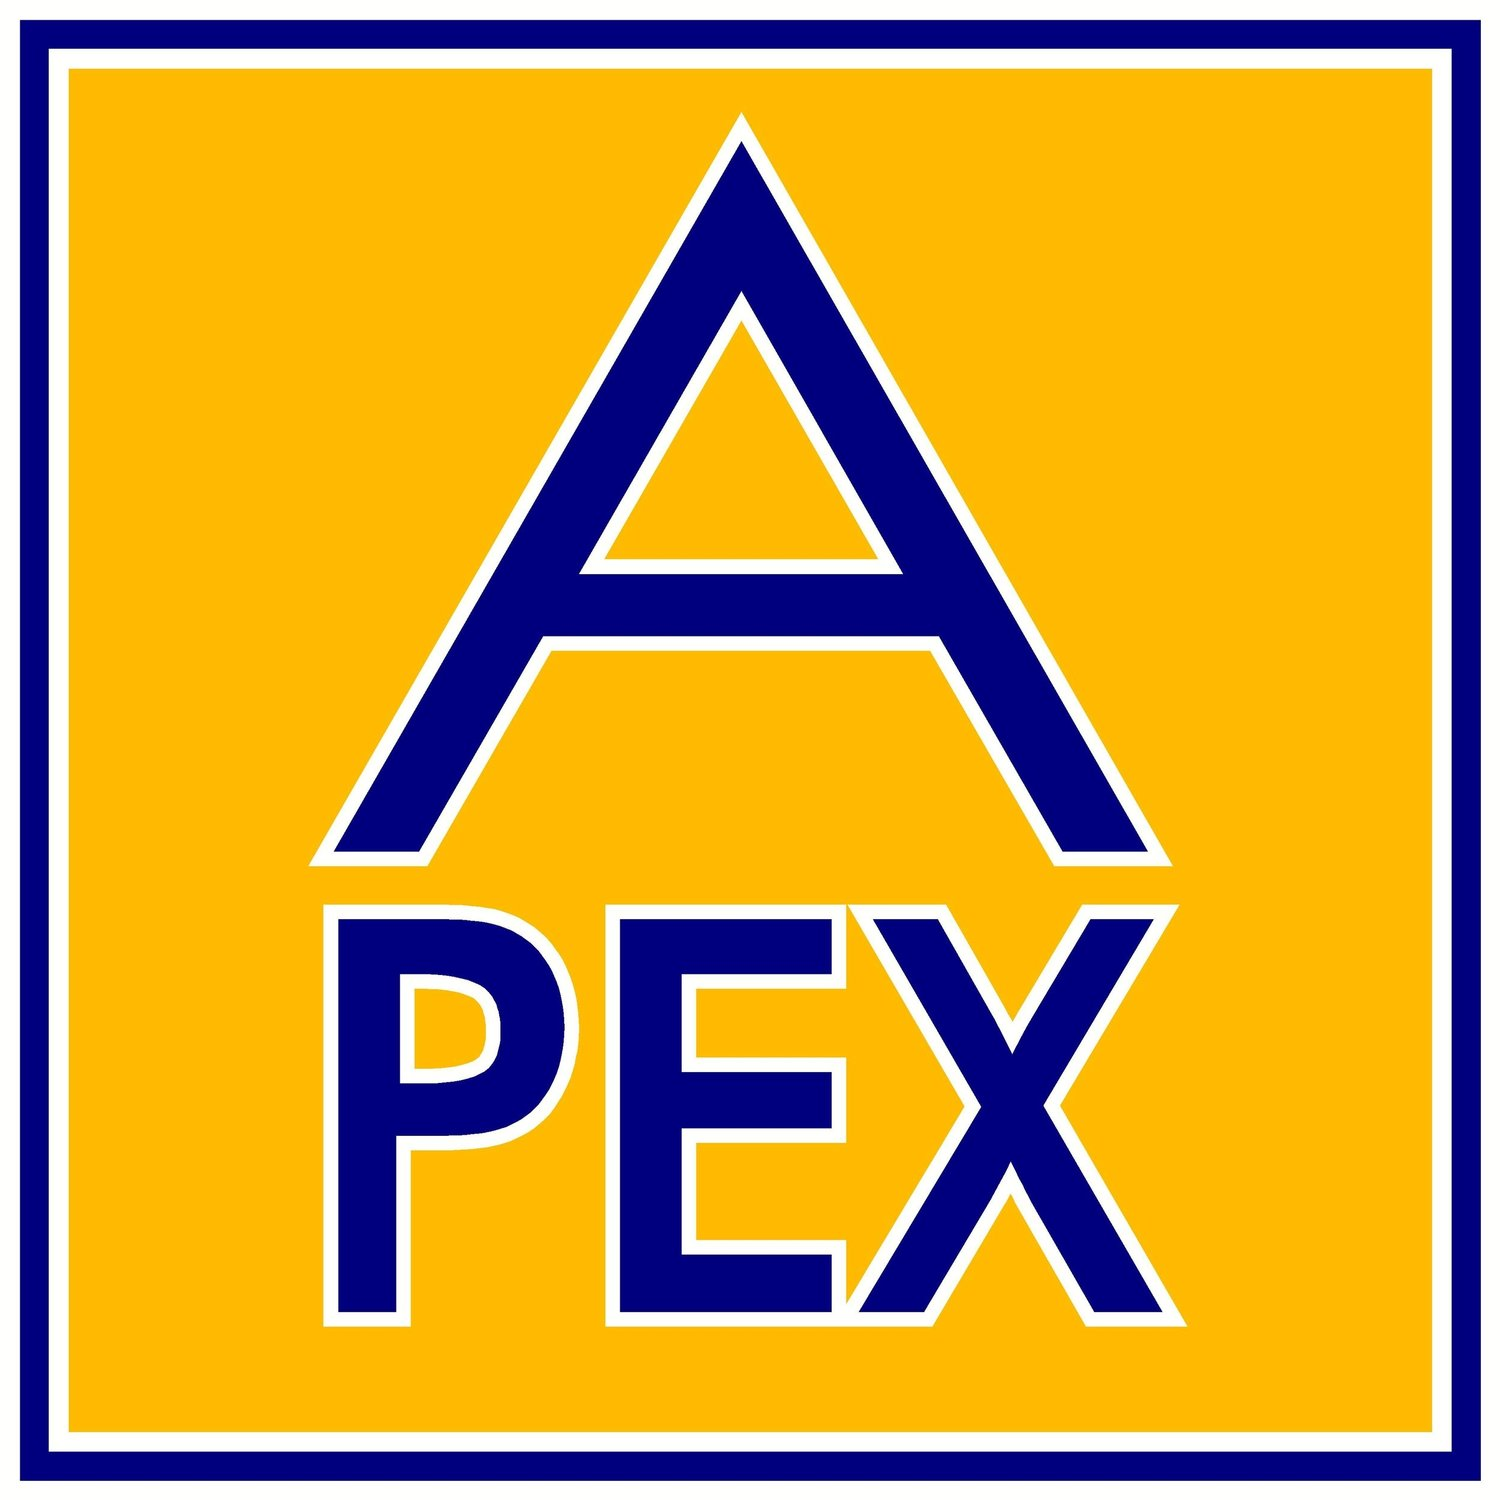 Apex - Physical Therapy